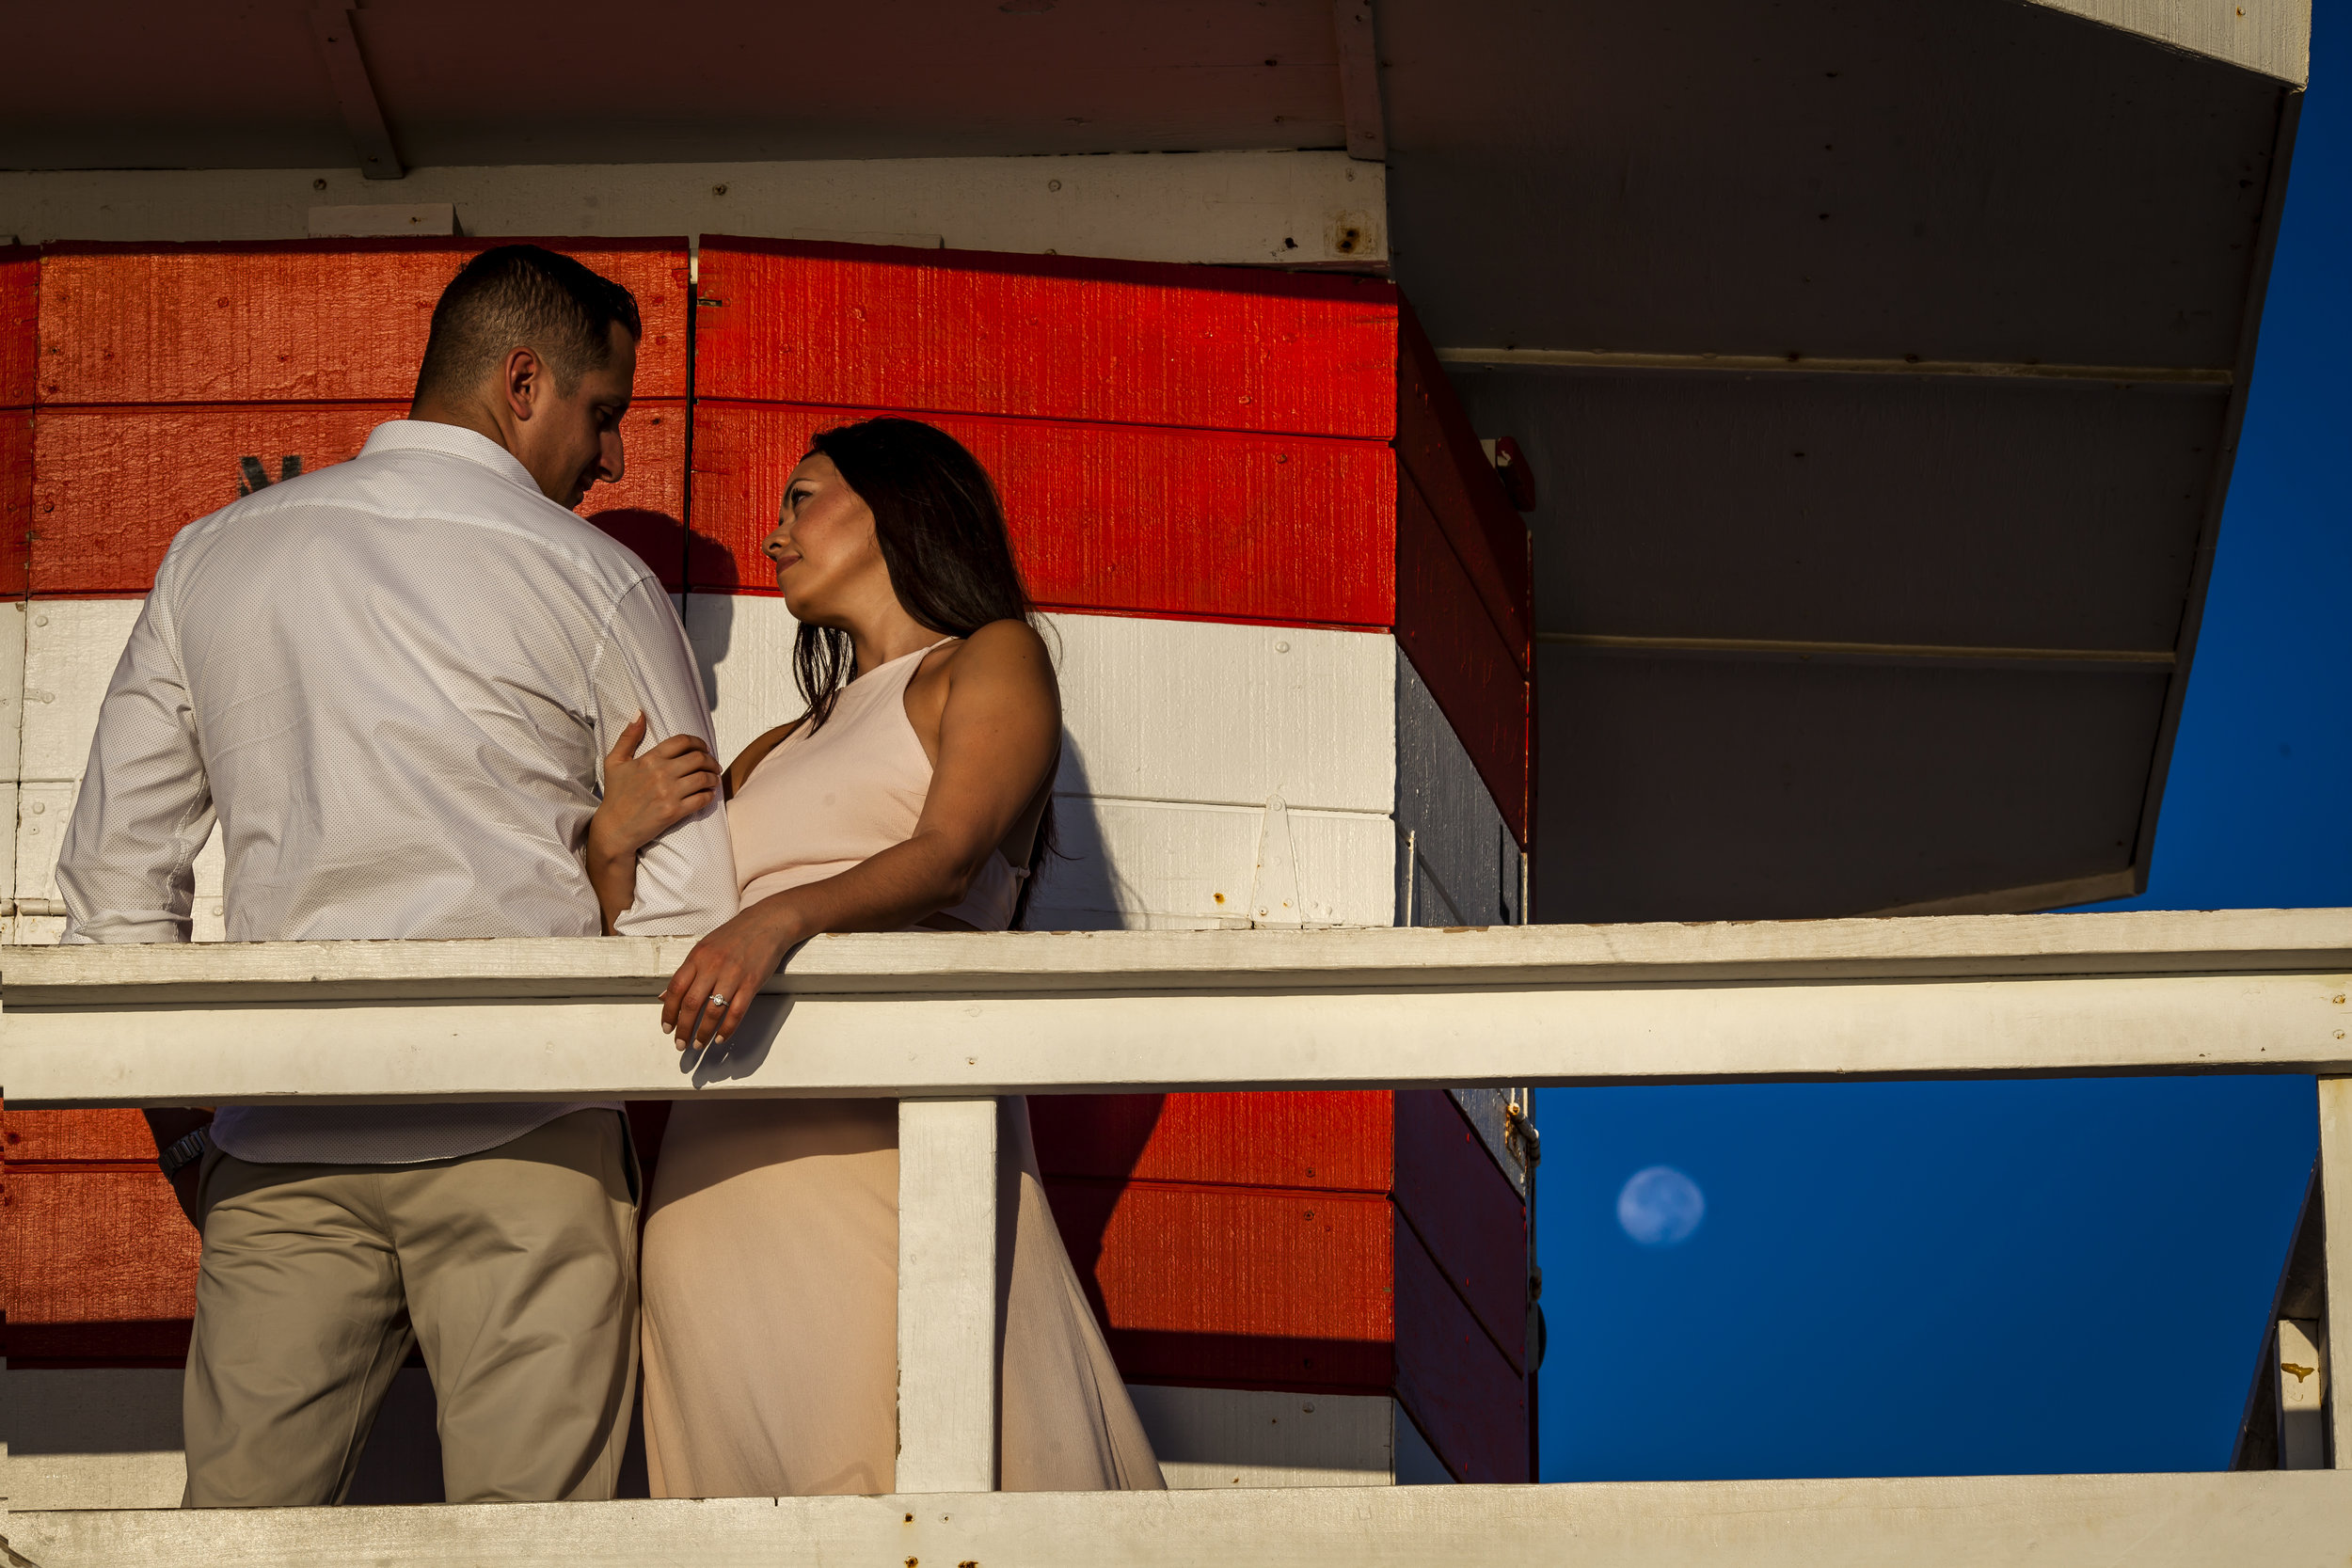 sunrise-miami-beach-engagement-pj-379.jpg